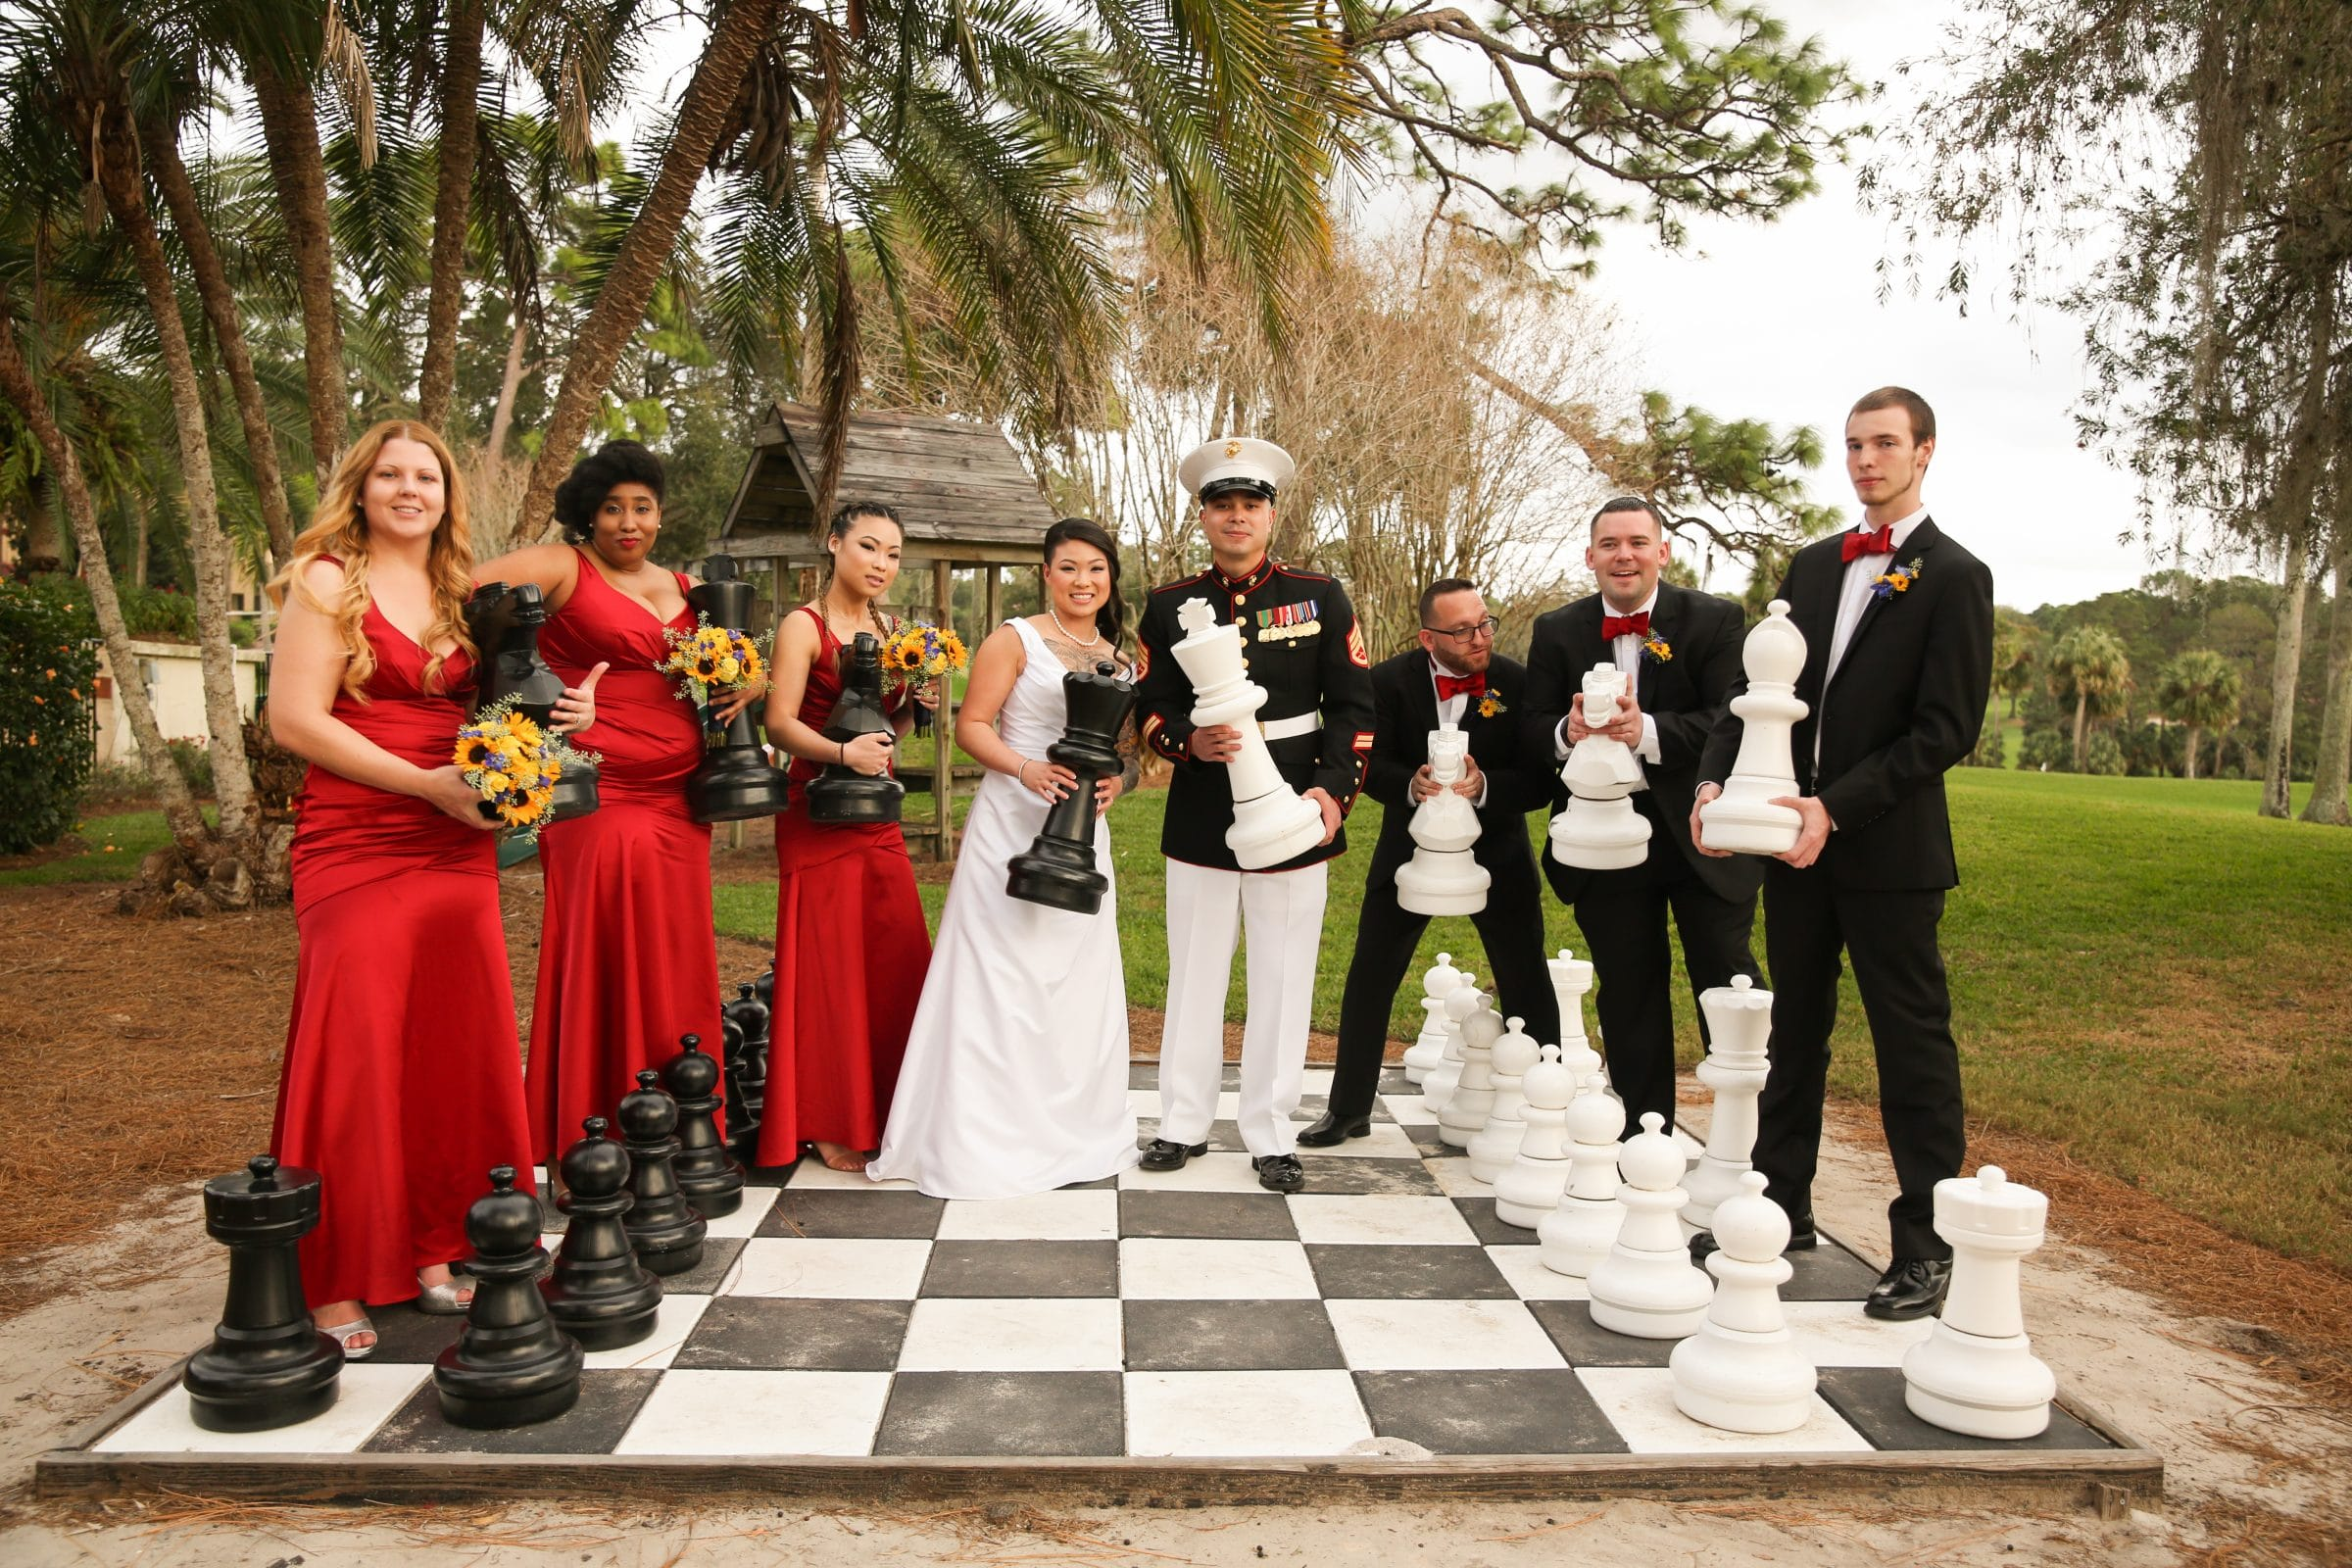 Wedding party holding chess pieces on giant chess board at Mission Inn Resort